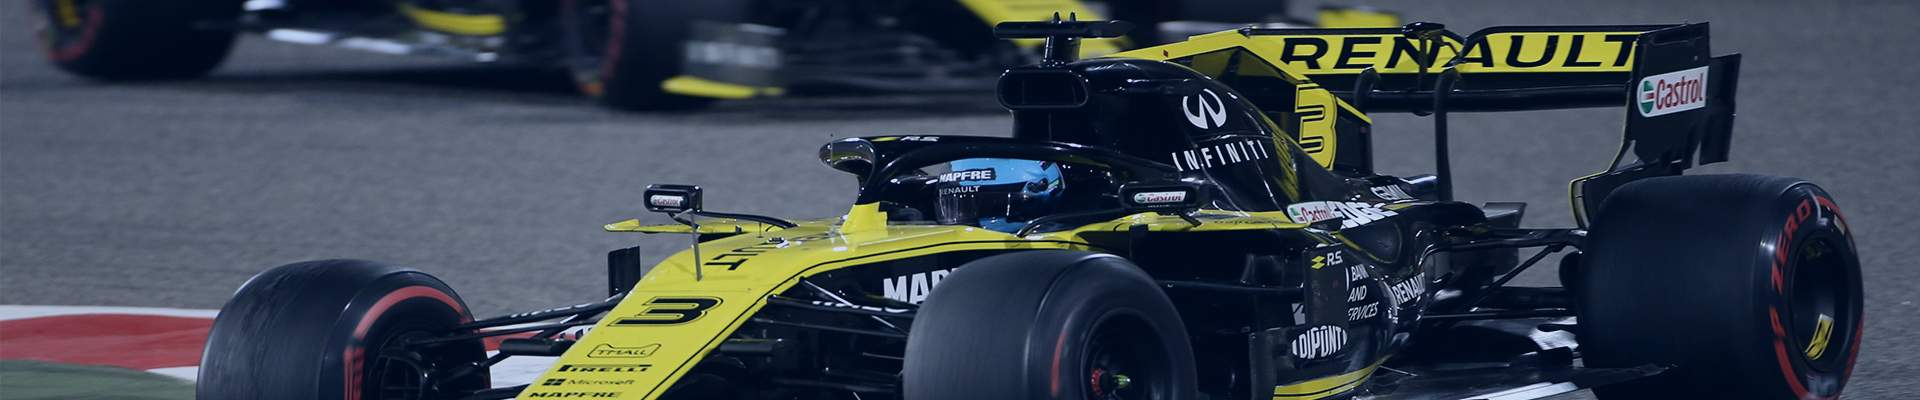 Renault_F1_Team_Stronger_and_Safer_1920x400.jpg